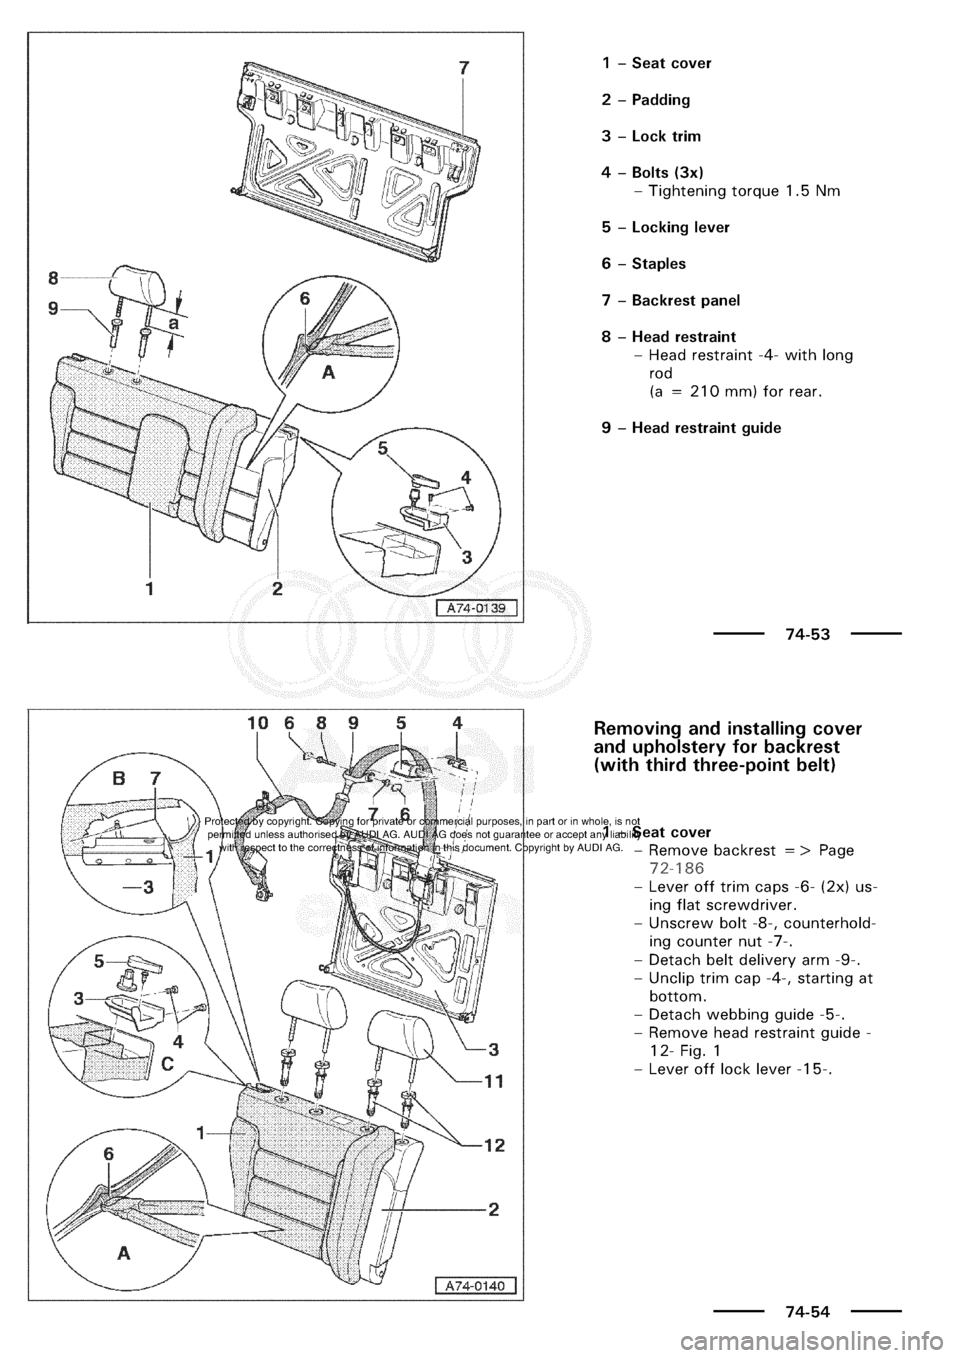 AUDI A3 2002 8L / 1.G General Body Assembly Interior Workshop Manual